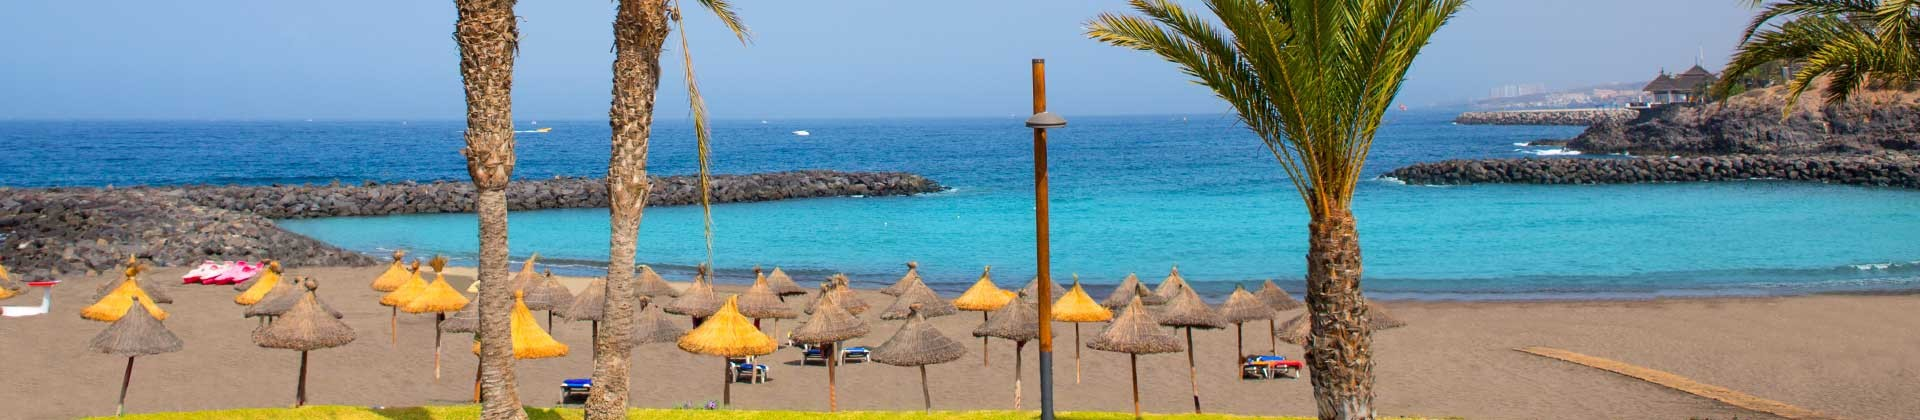 https://www.goodmorningtenerife.com/wp-content/uploads/2014/08/02_slide_beaches_GM_Tenerife1-1920x420.jpg